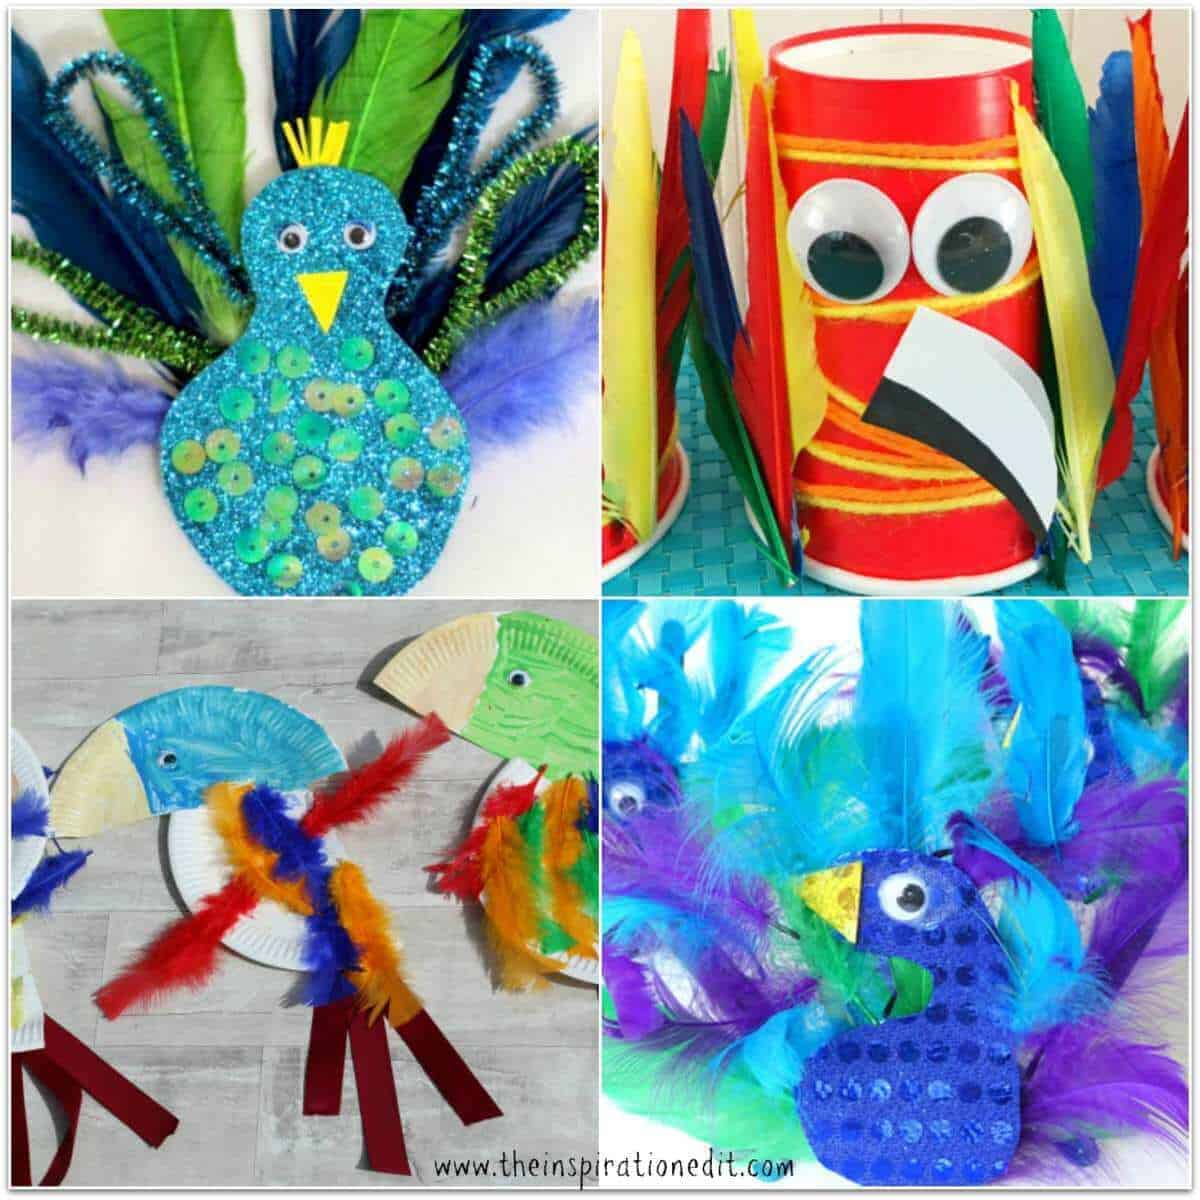 15 Tropical Bird Crafts Kids Will Love · The Inspiration Edit